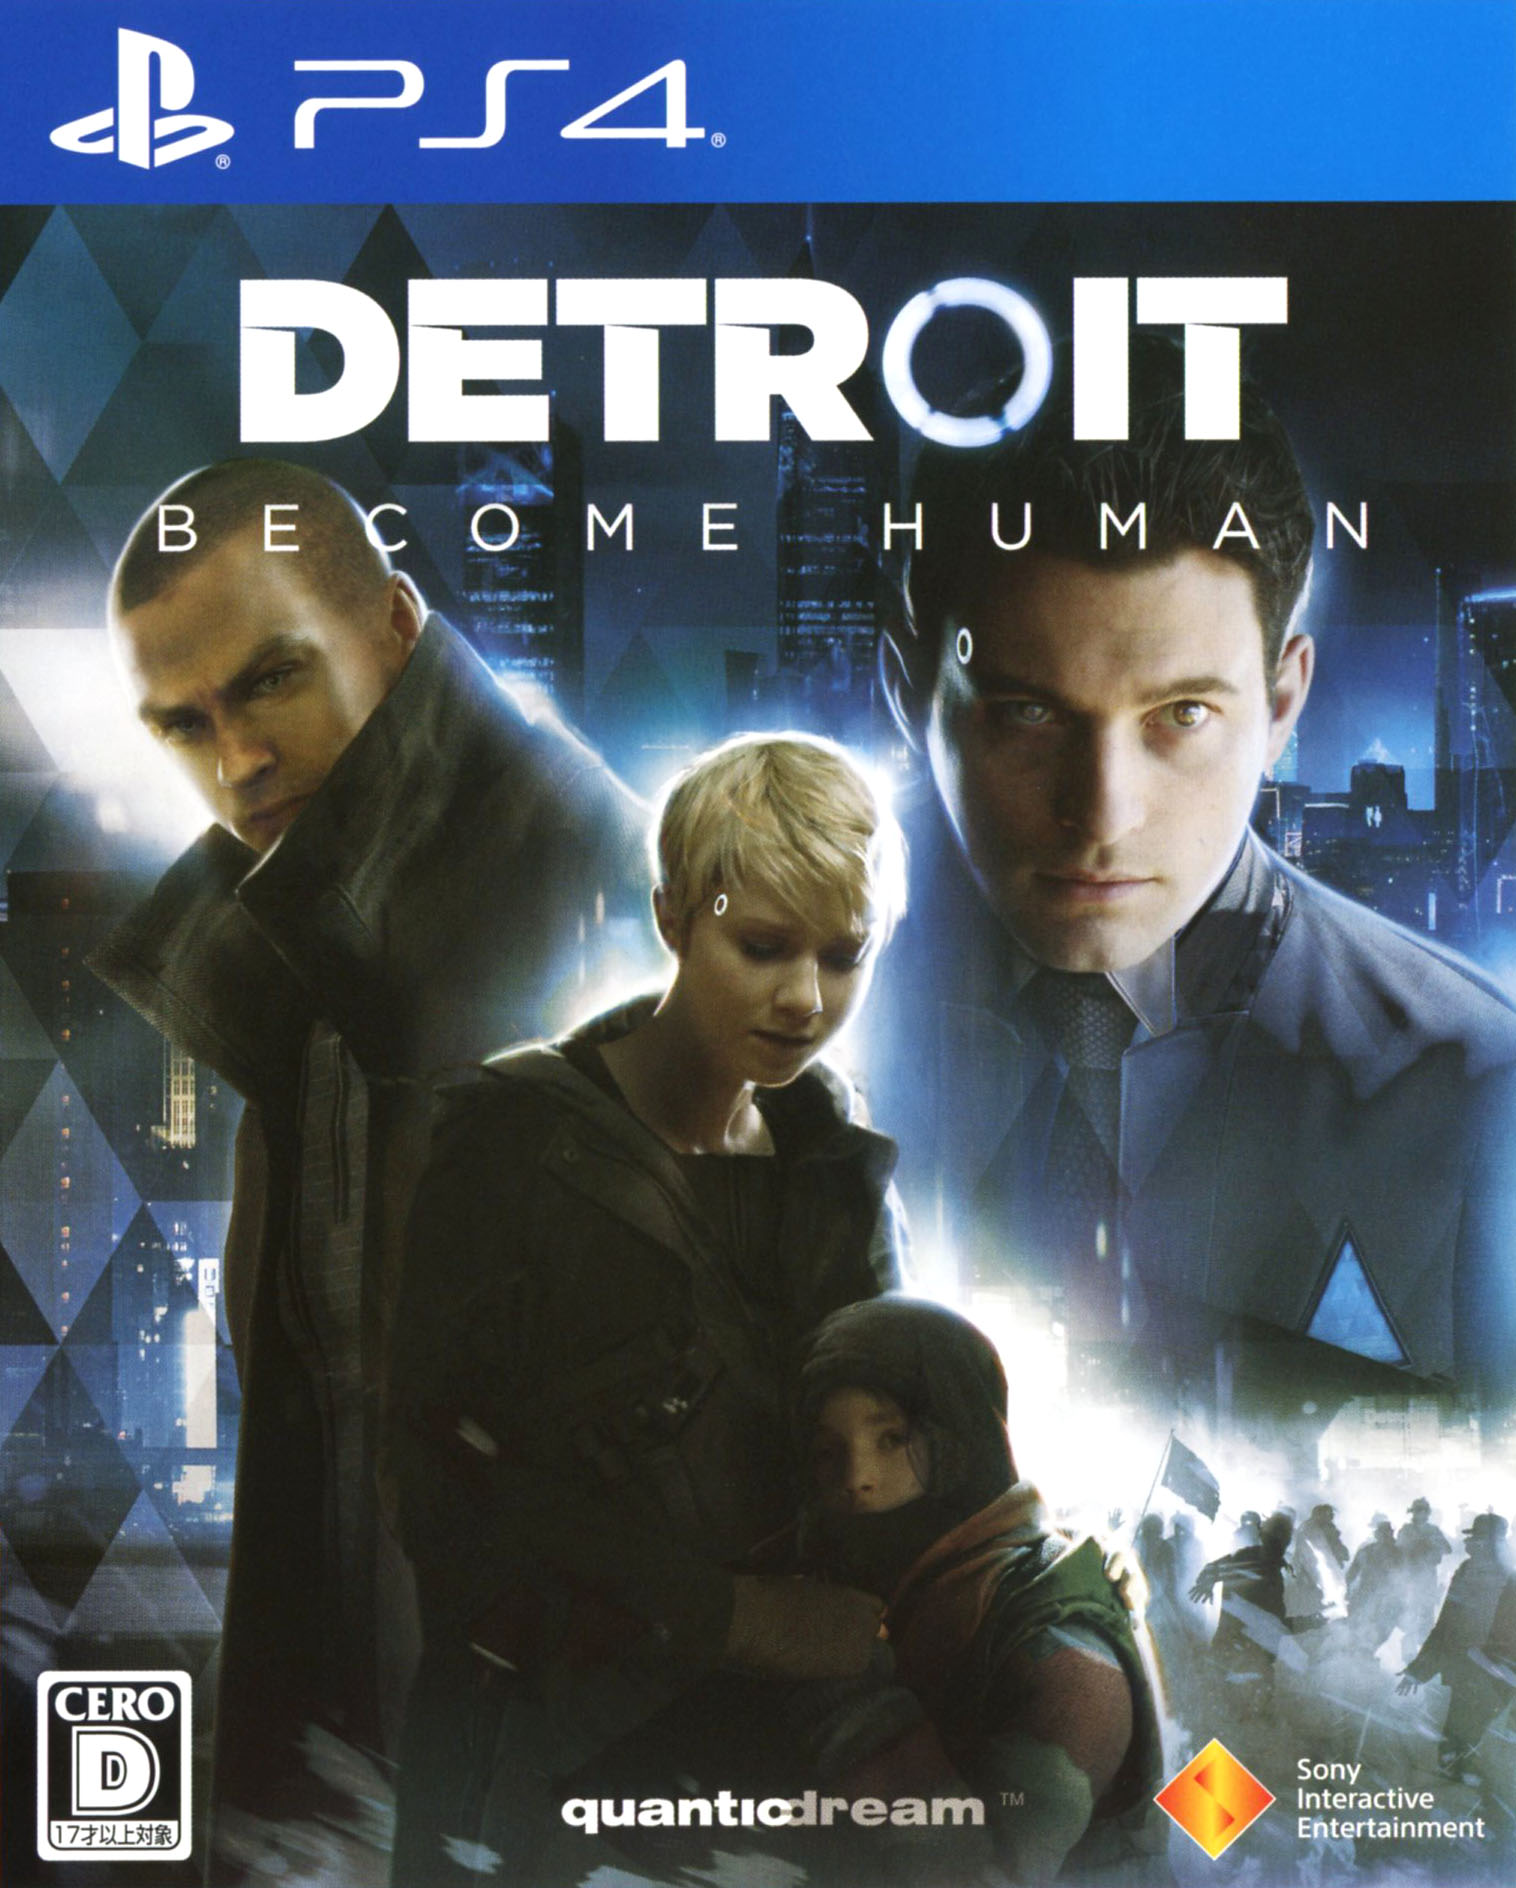 PS4 DETROIT BECOME HUMAN 買取